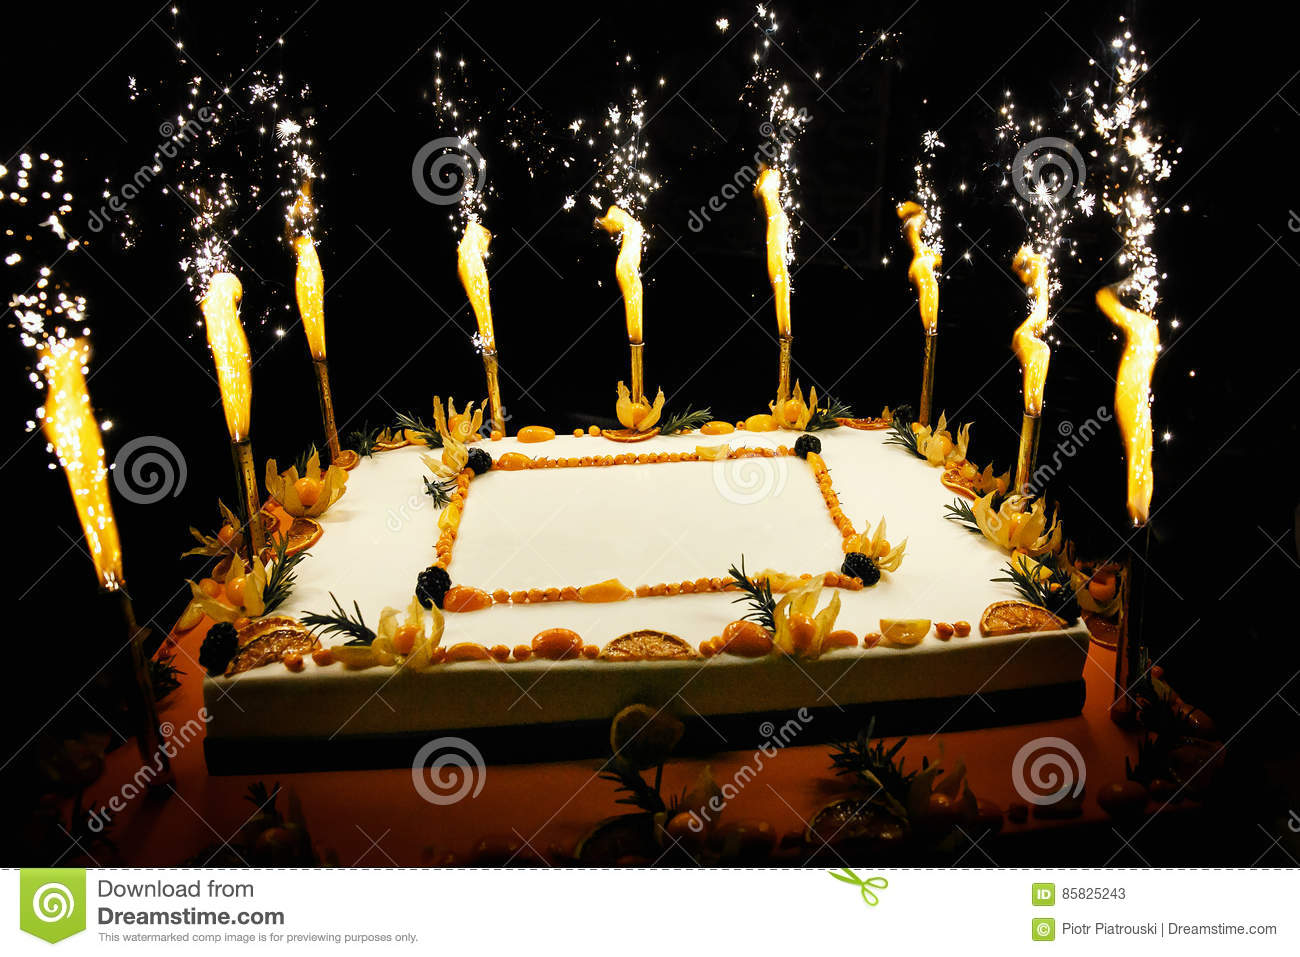 Birthday Fruit Cake With Fireworks Candles Stock Image Image Of